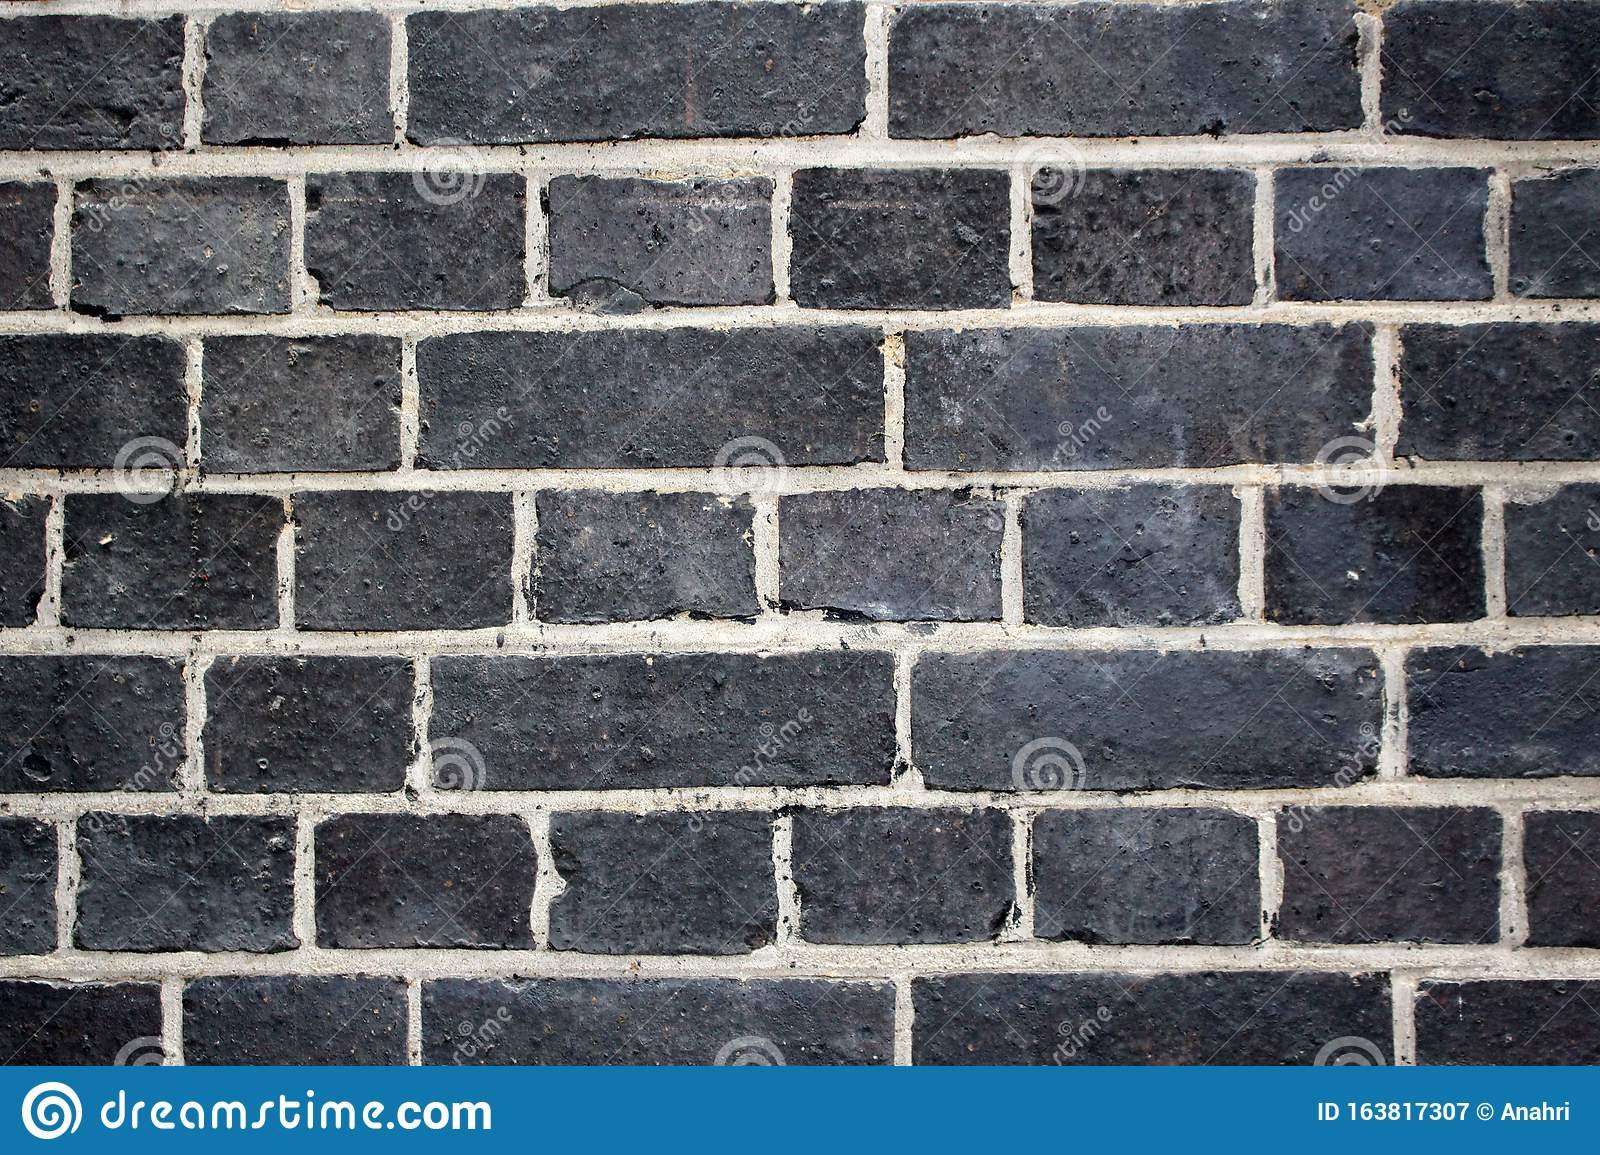 Detail Of Whitewashed Exterior Brick Wall For Texture And Background Macro Detail Industrial Pattern Stock Image Image Of Nittygritty Architecture 163817307